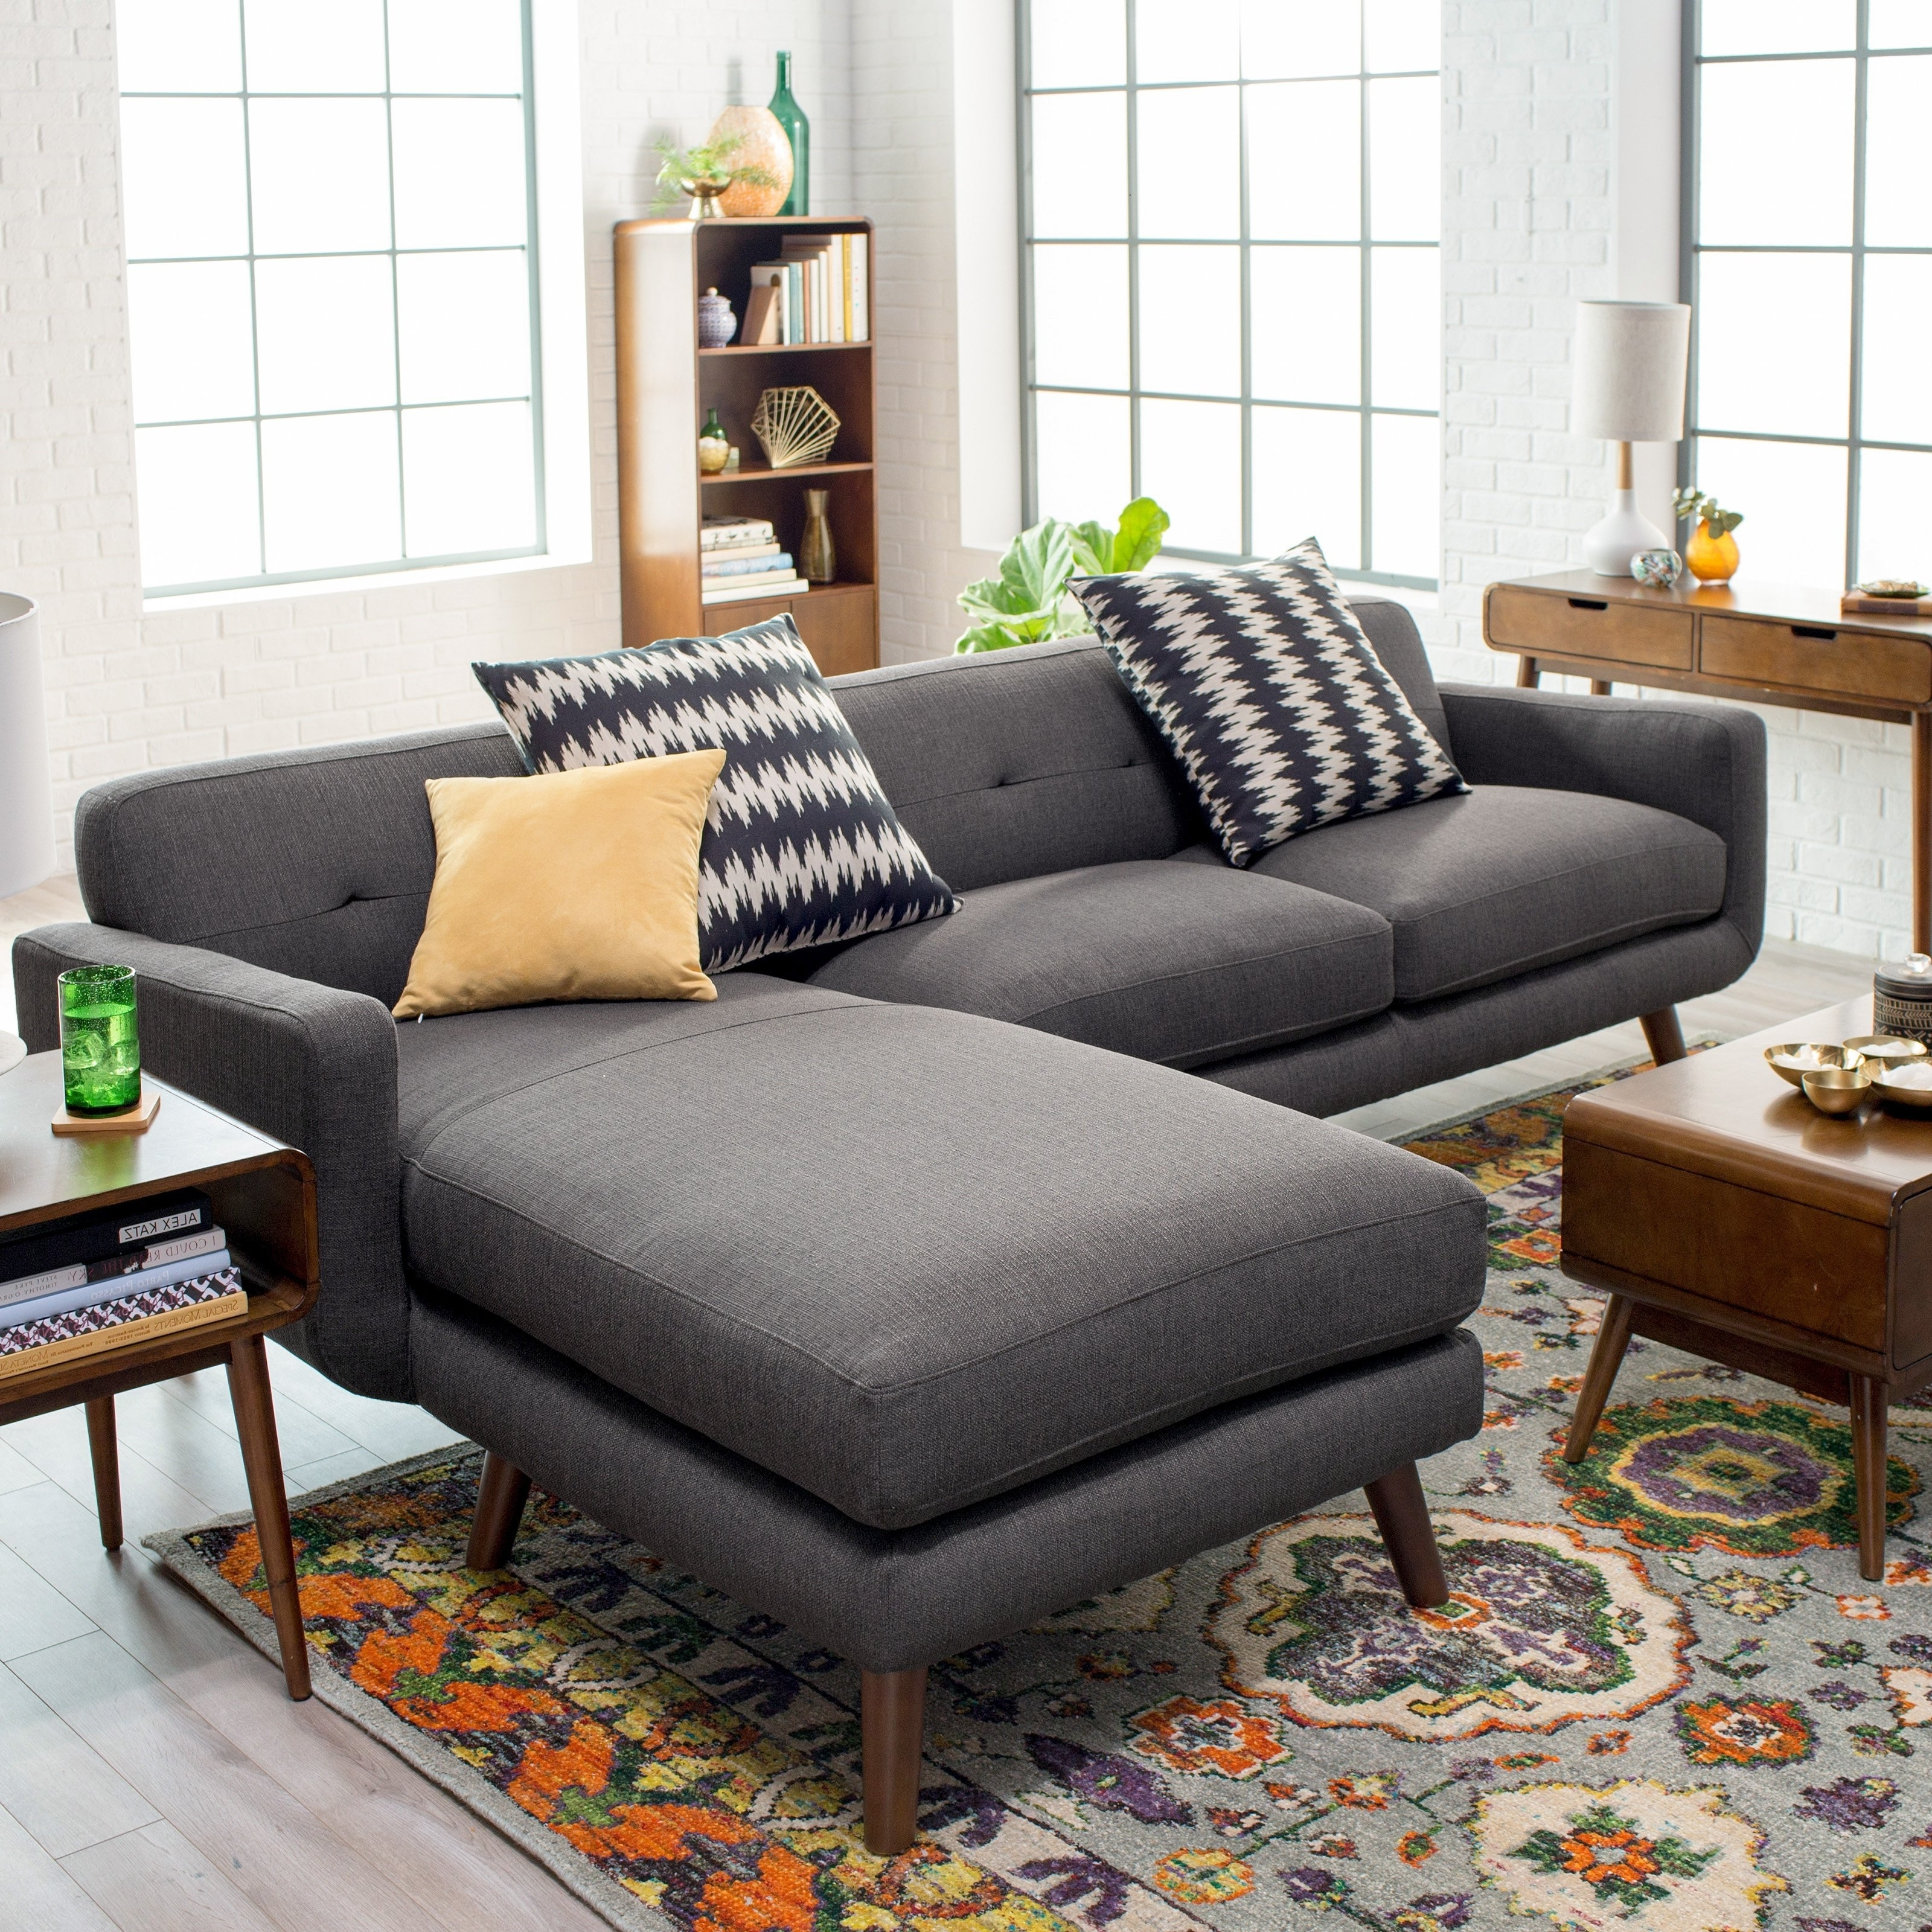 Favorite Living Room Furniture : Sectional Sofas For Small Spaces Sectional Within Small Sectional Sofas For Small Spaces (View 12 of 15)